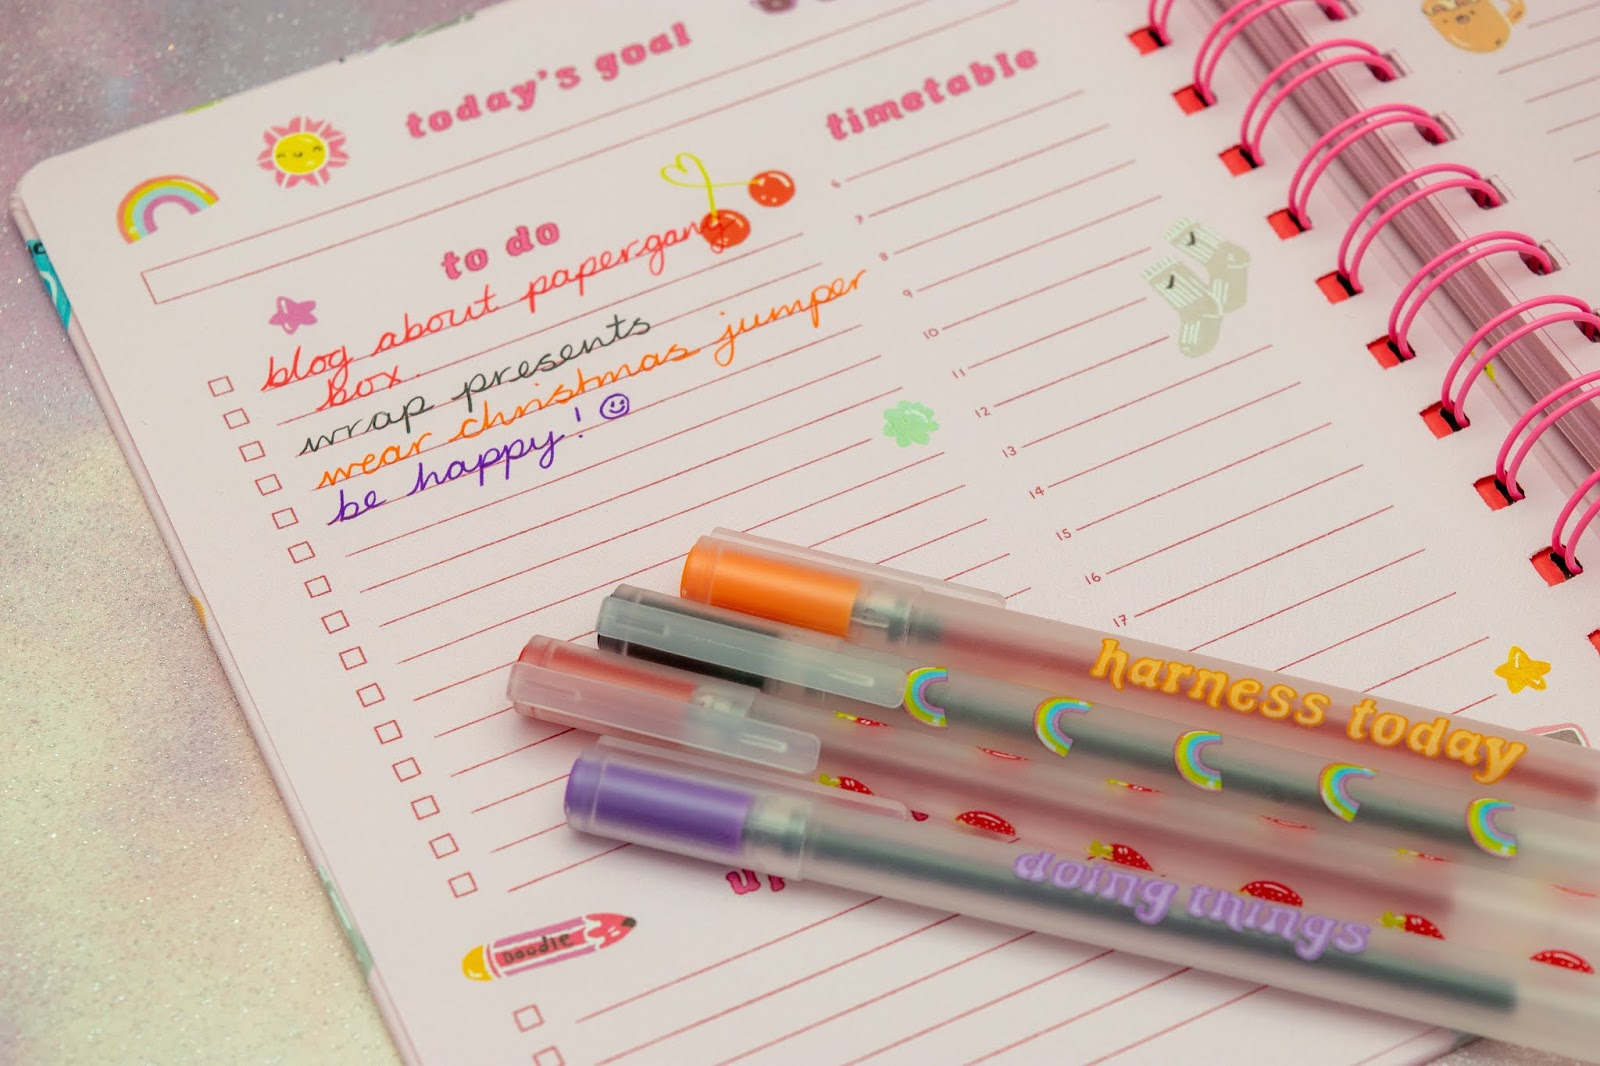 A purple, red, orange and black pen on top of a notebook and writing in each pen.